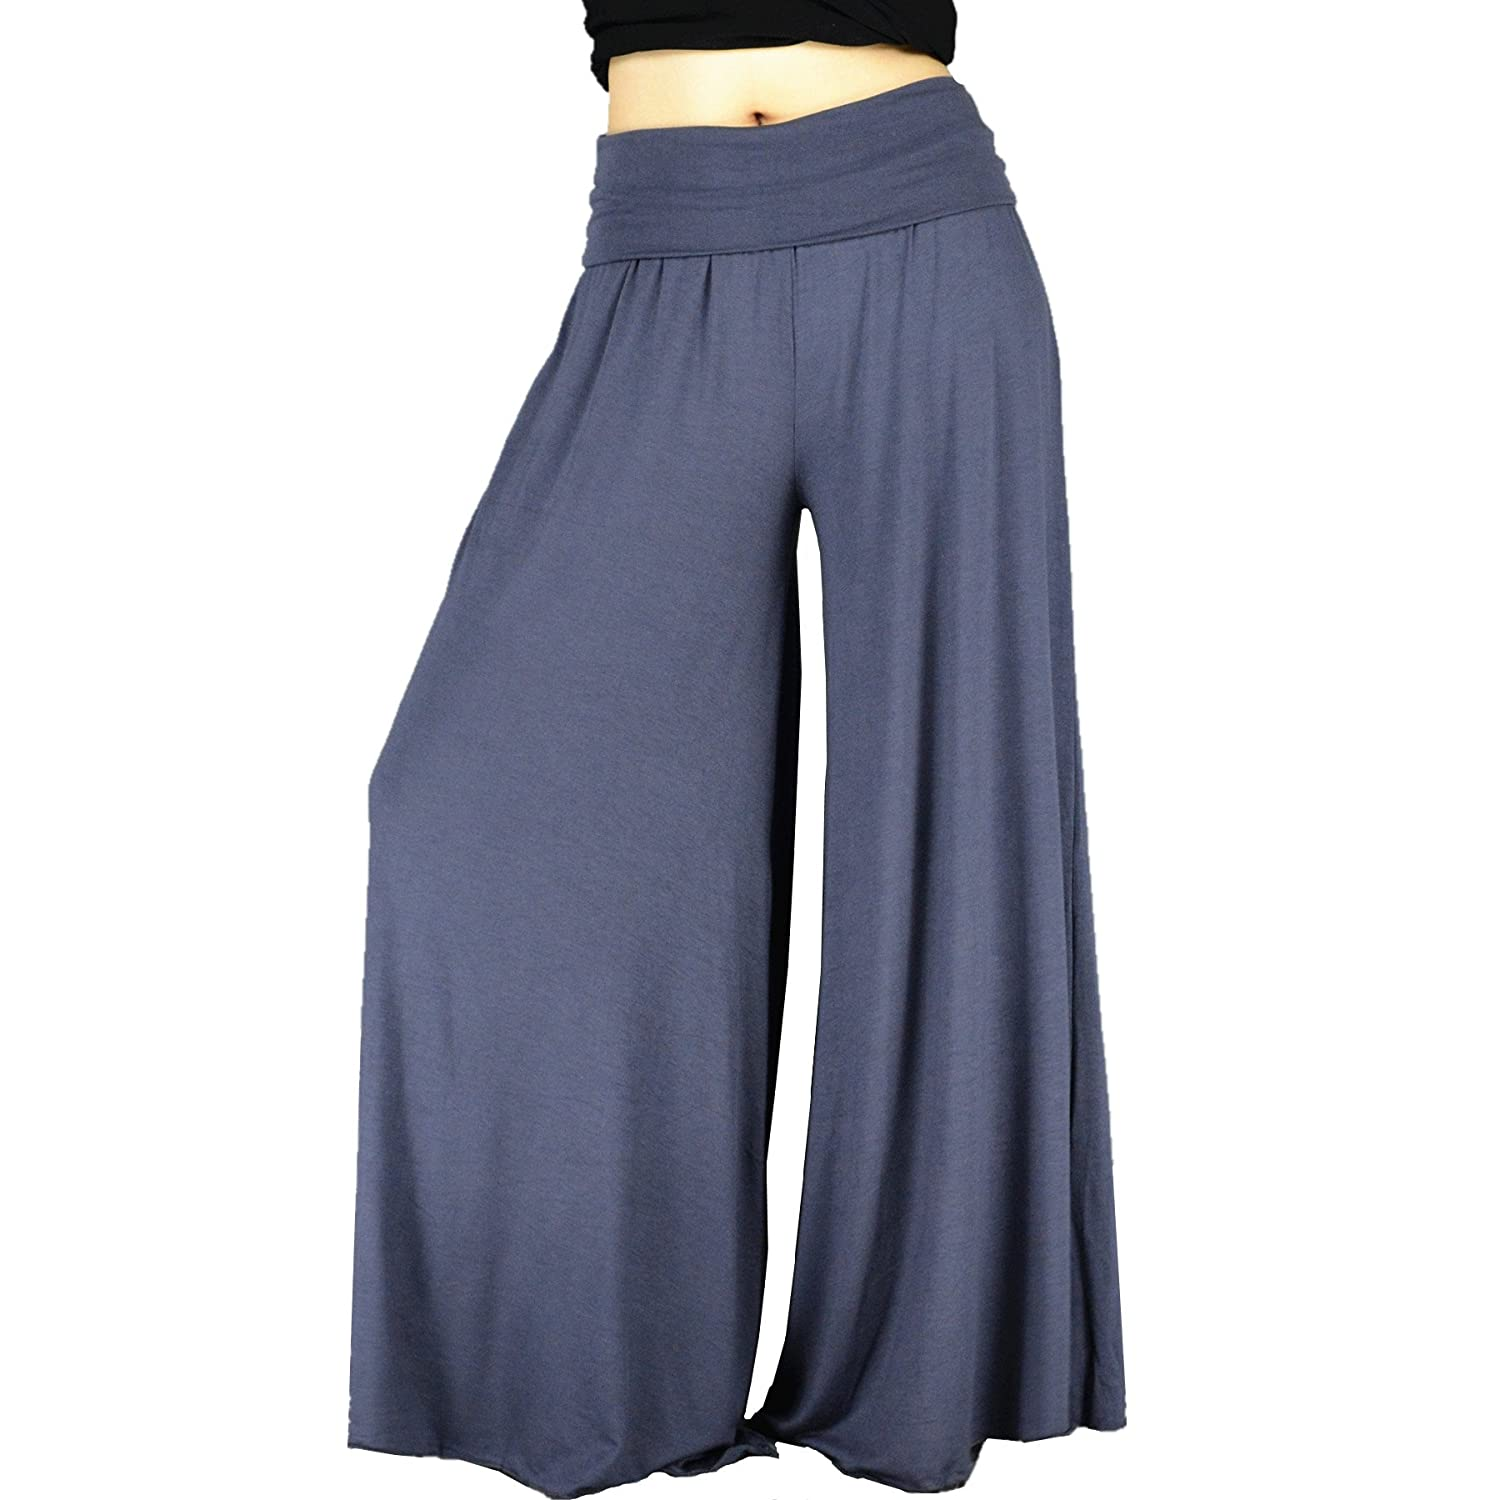 YSJ Women's Fold Over Waist Palazzo Yoga Lounge Pants Wide Leg Culottes Trousers 0064